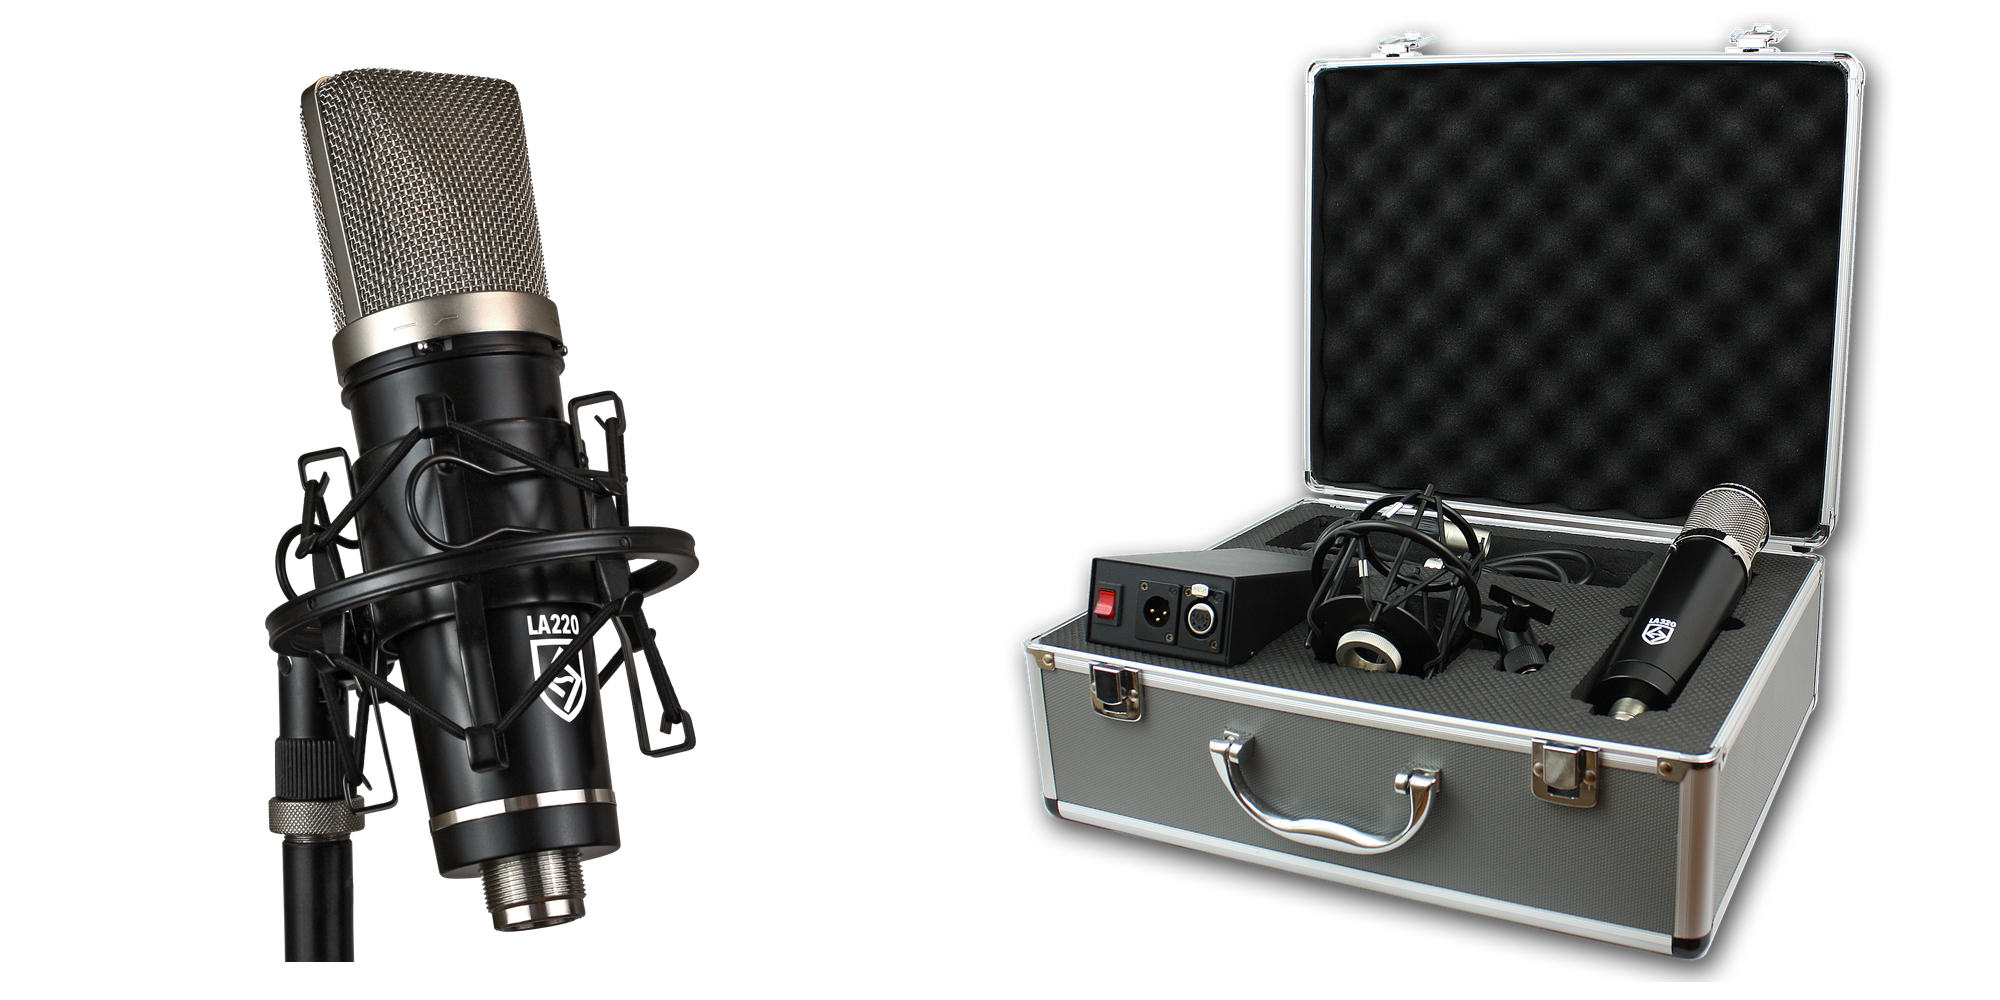 Lauten Audio LA-220 & LA-320 Microphones - Synthax Audio UK